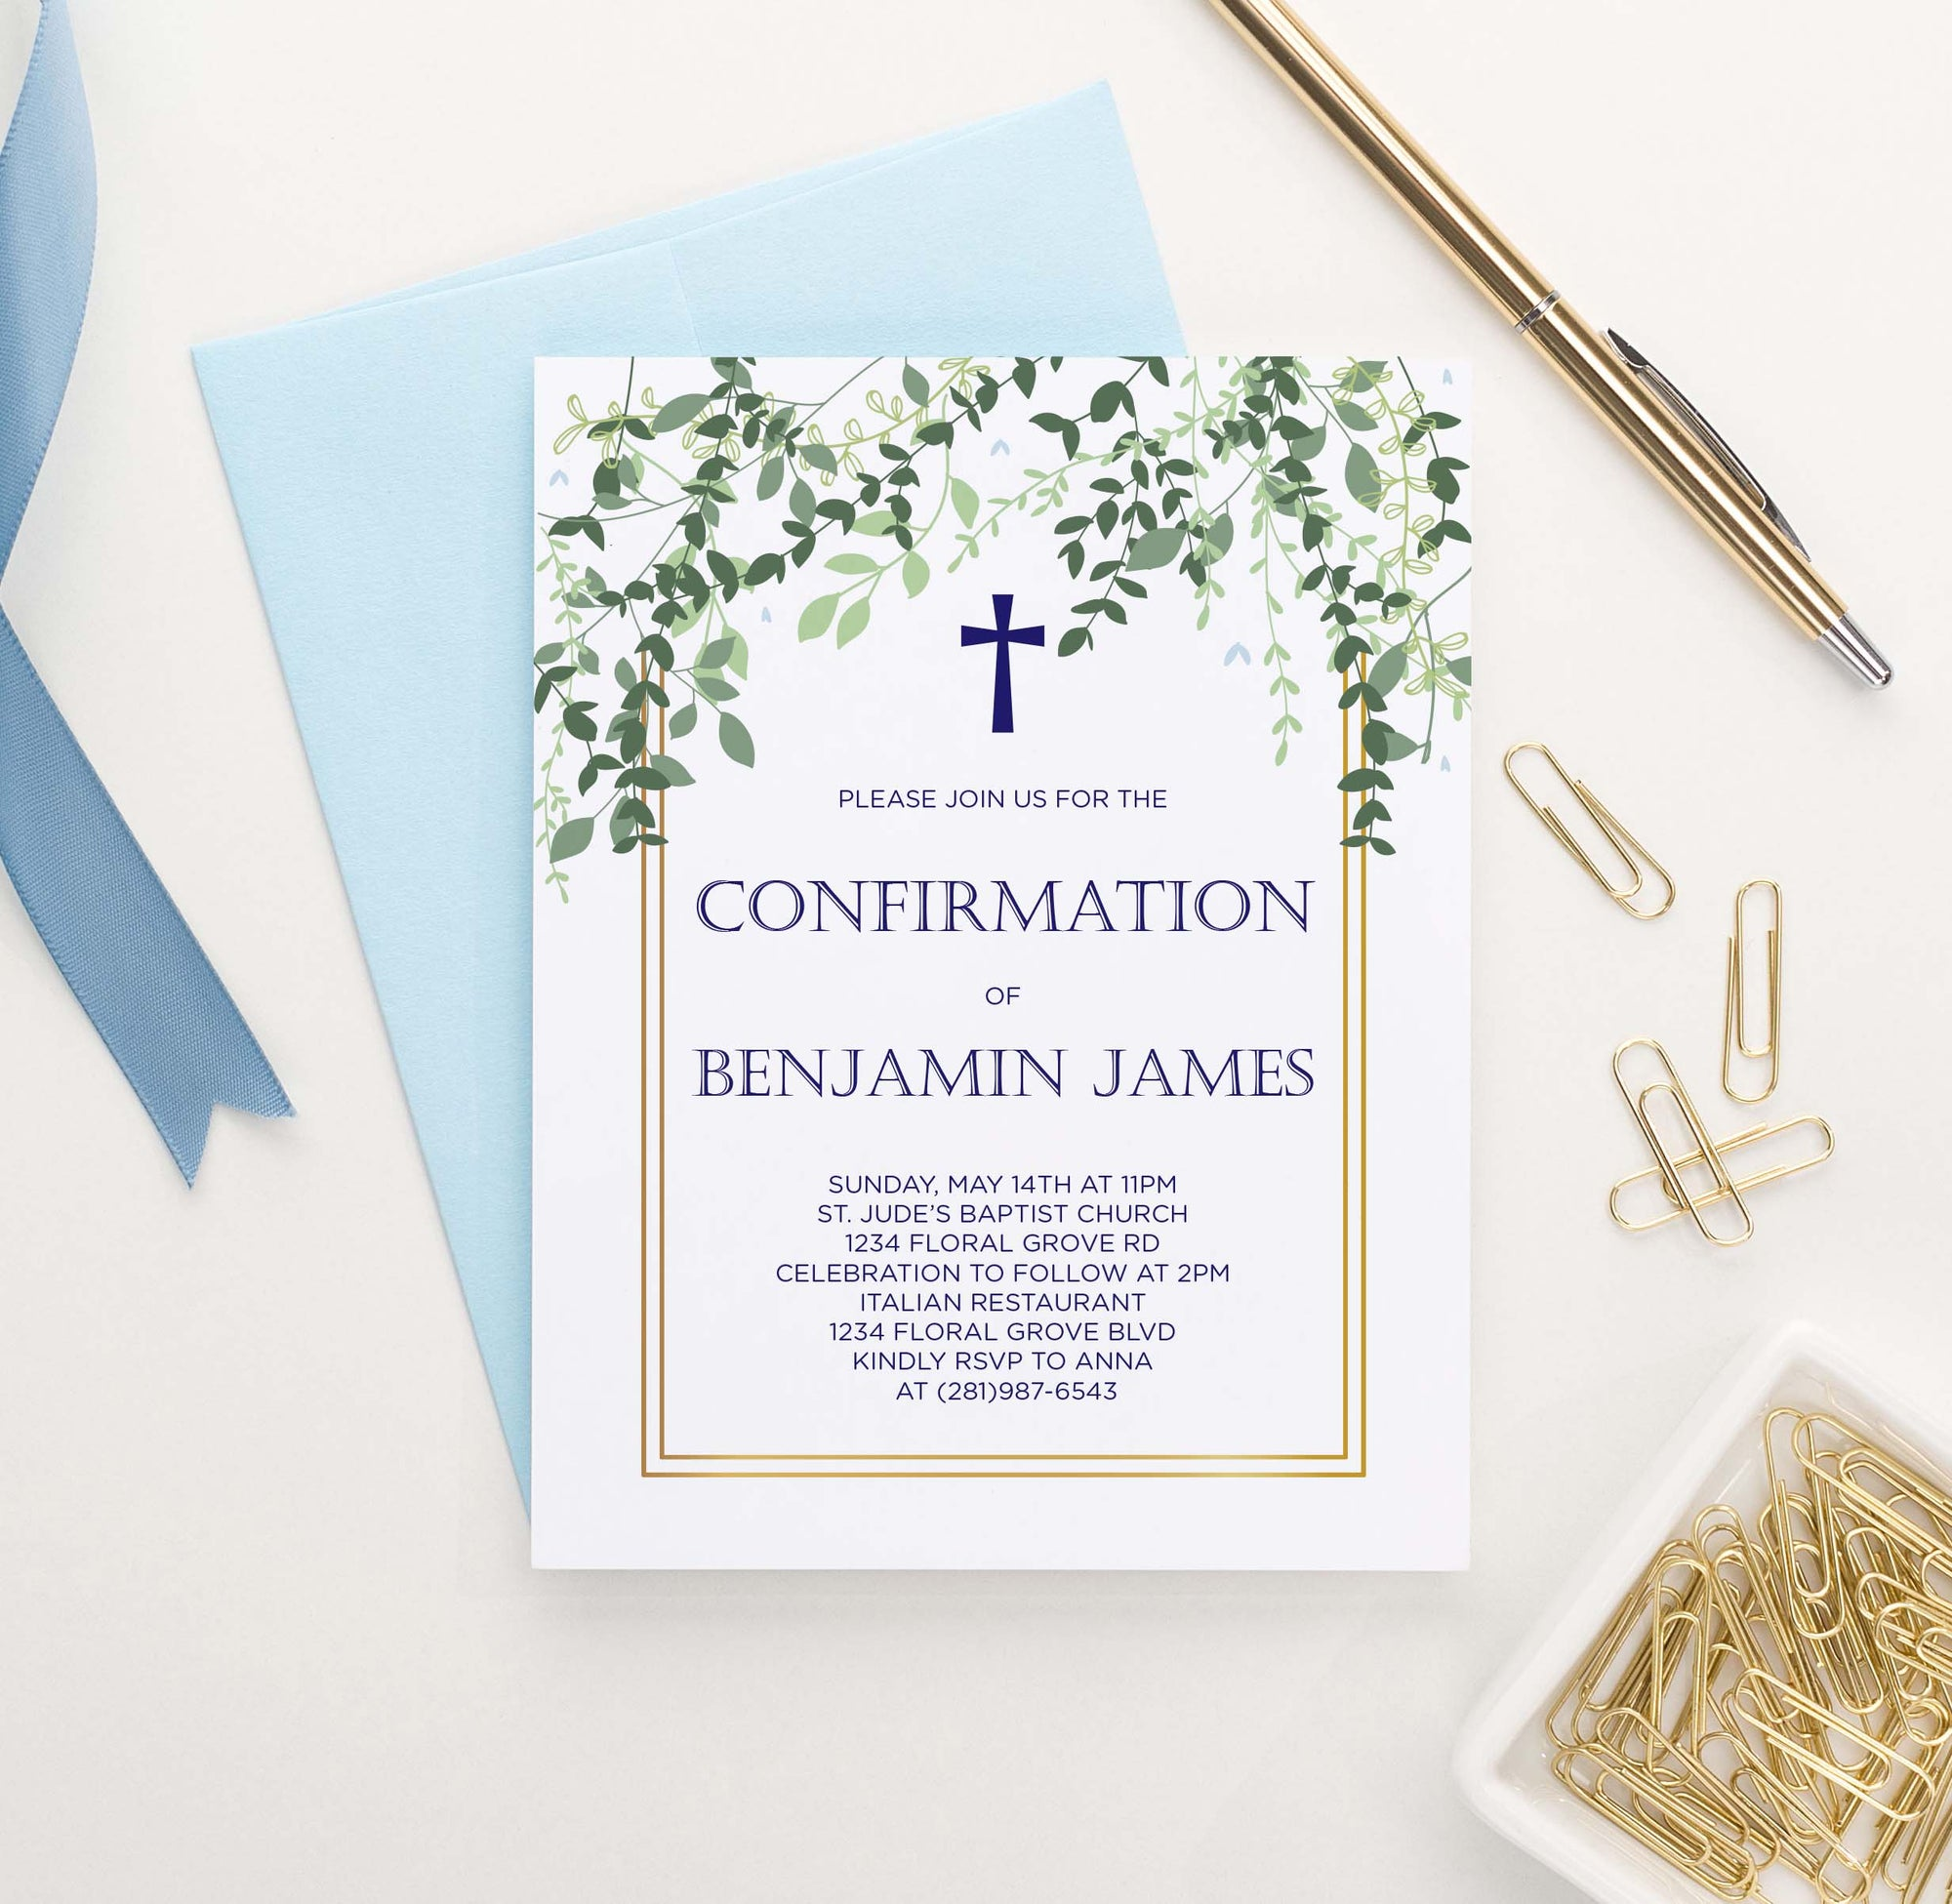 CONI023 elegant gold frame with greenery confirmation invite personalized vines leaves 1